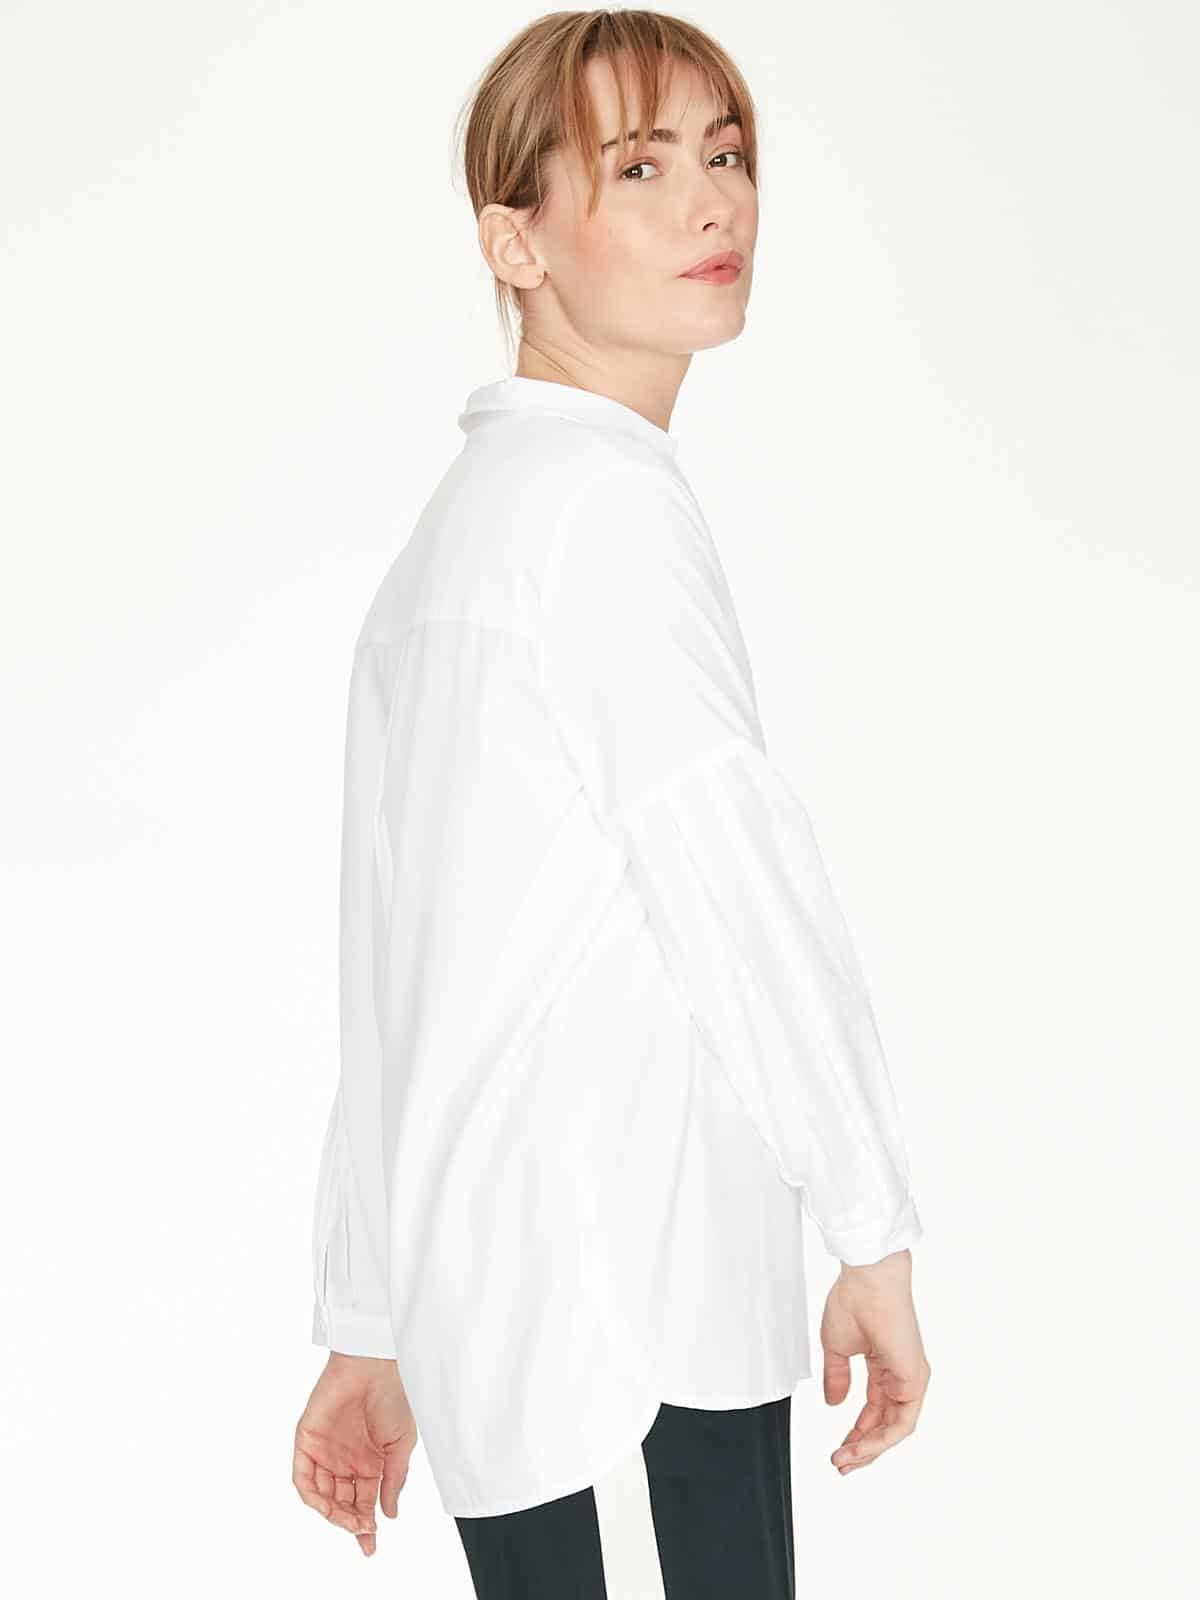 WWT5006-WHITE-Marion-Over-The-Head-Shirt-In-White-Organic-Cotton-6